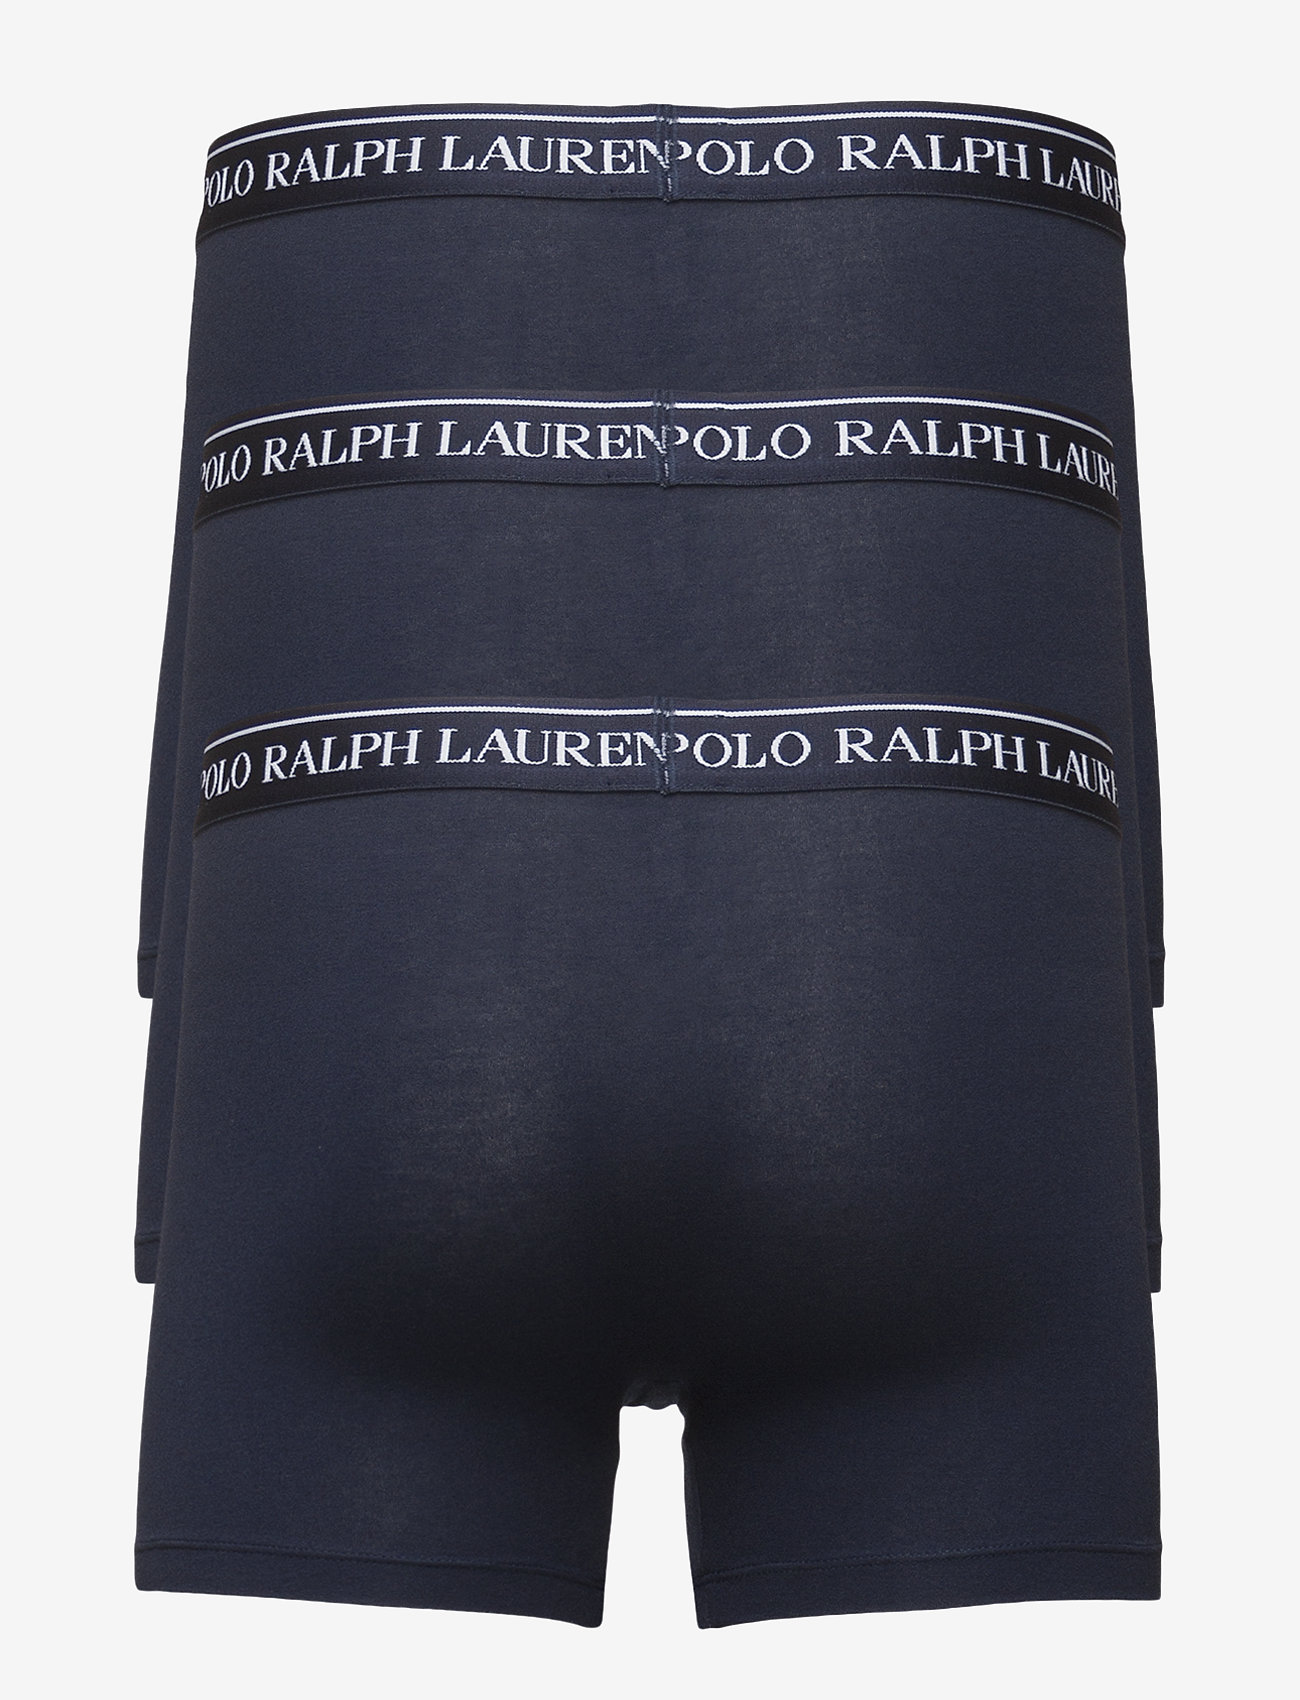 Polo Ralph Lauren Underwear - Stretch-Cotton-Trunk 3-Pack - boxers - 3pk cr nvy - 1